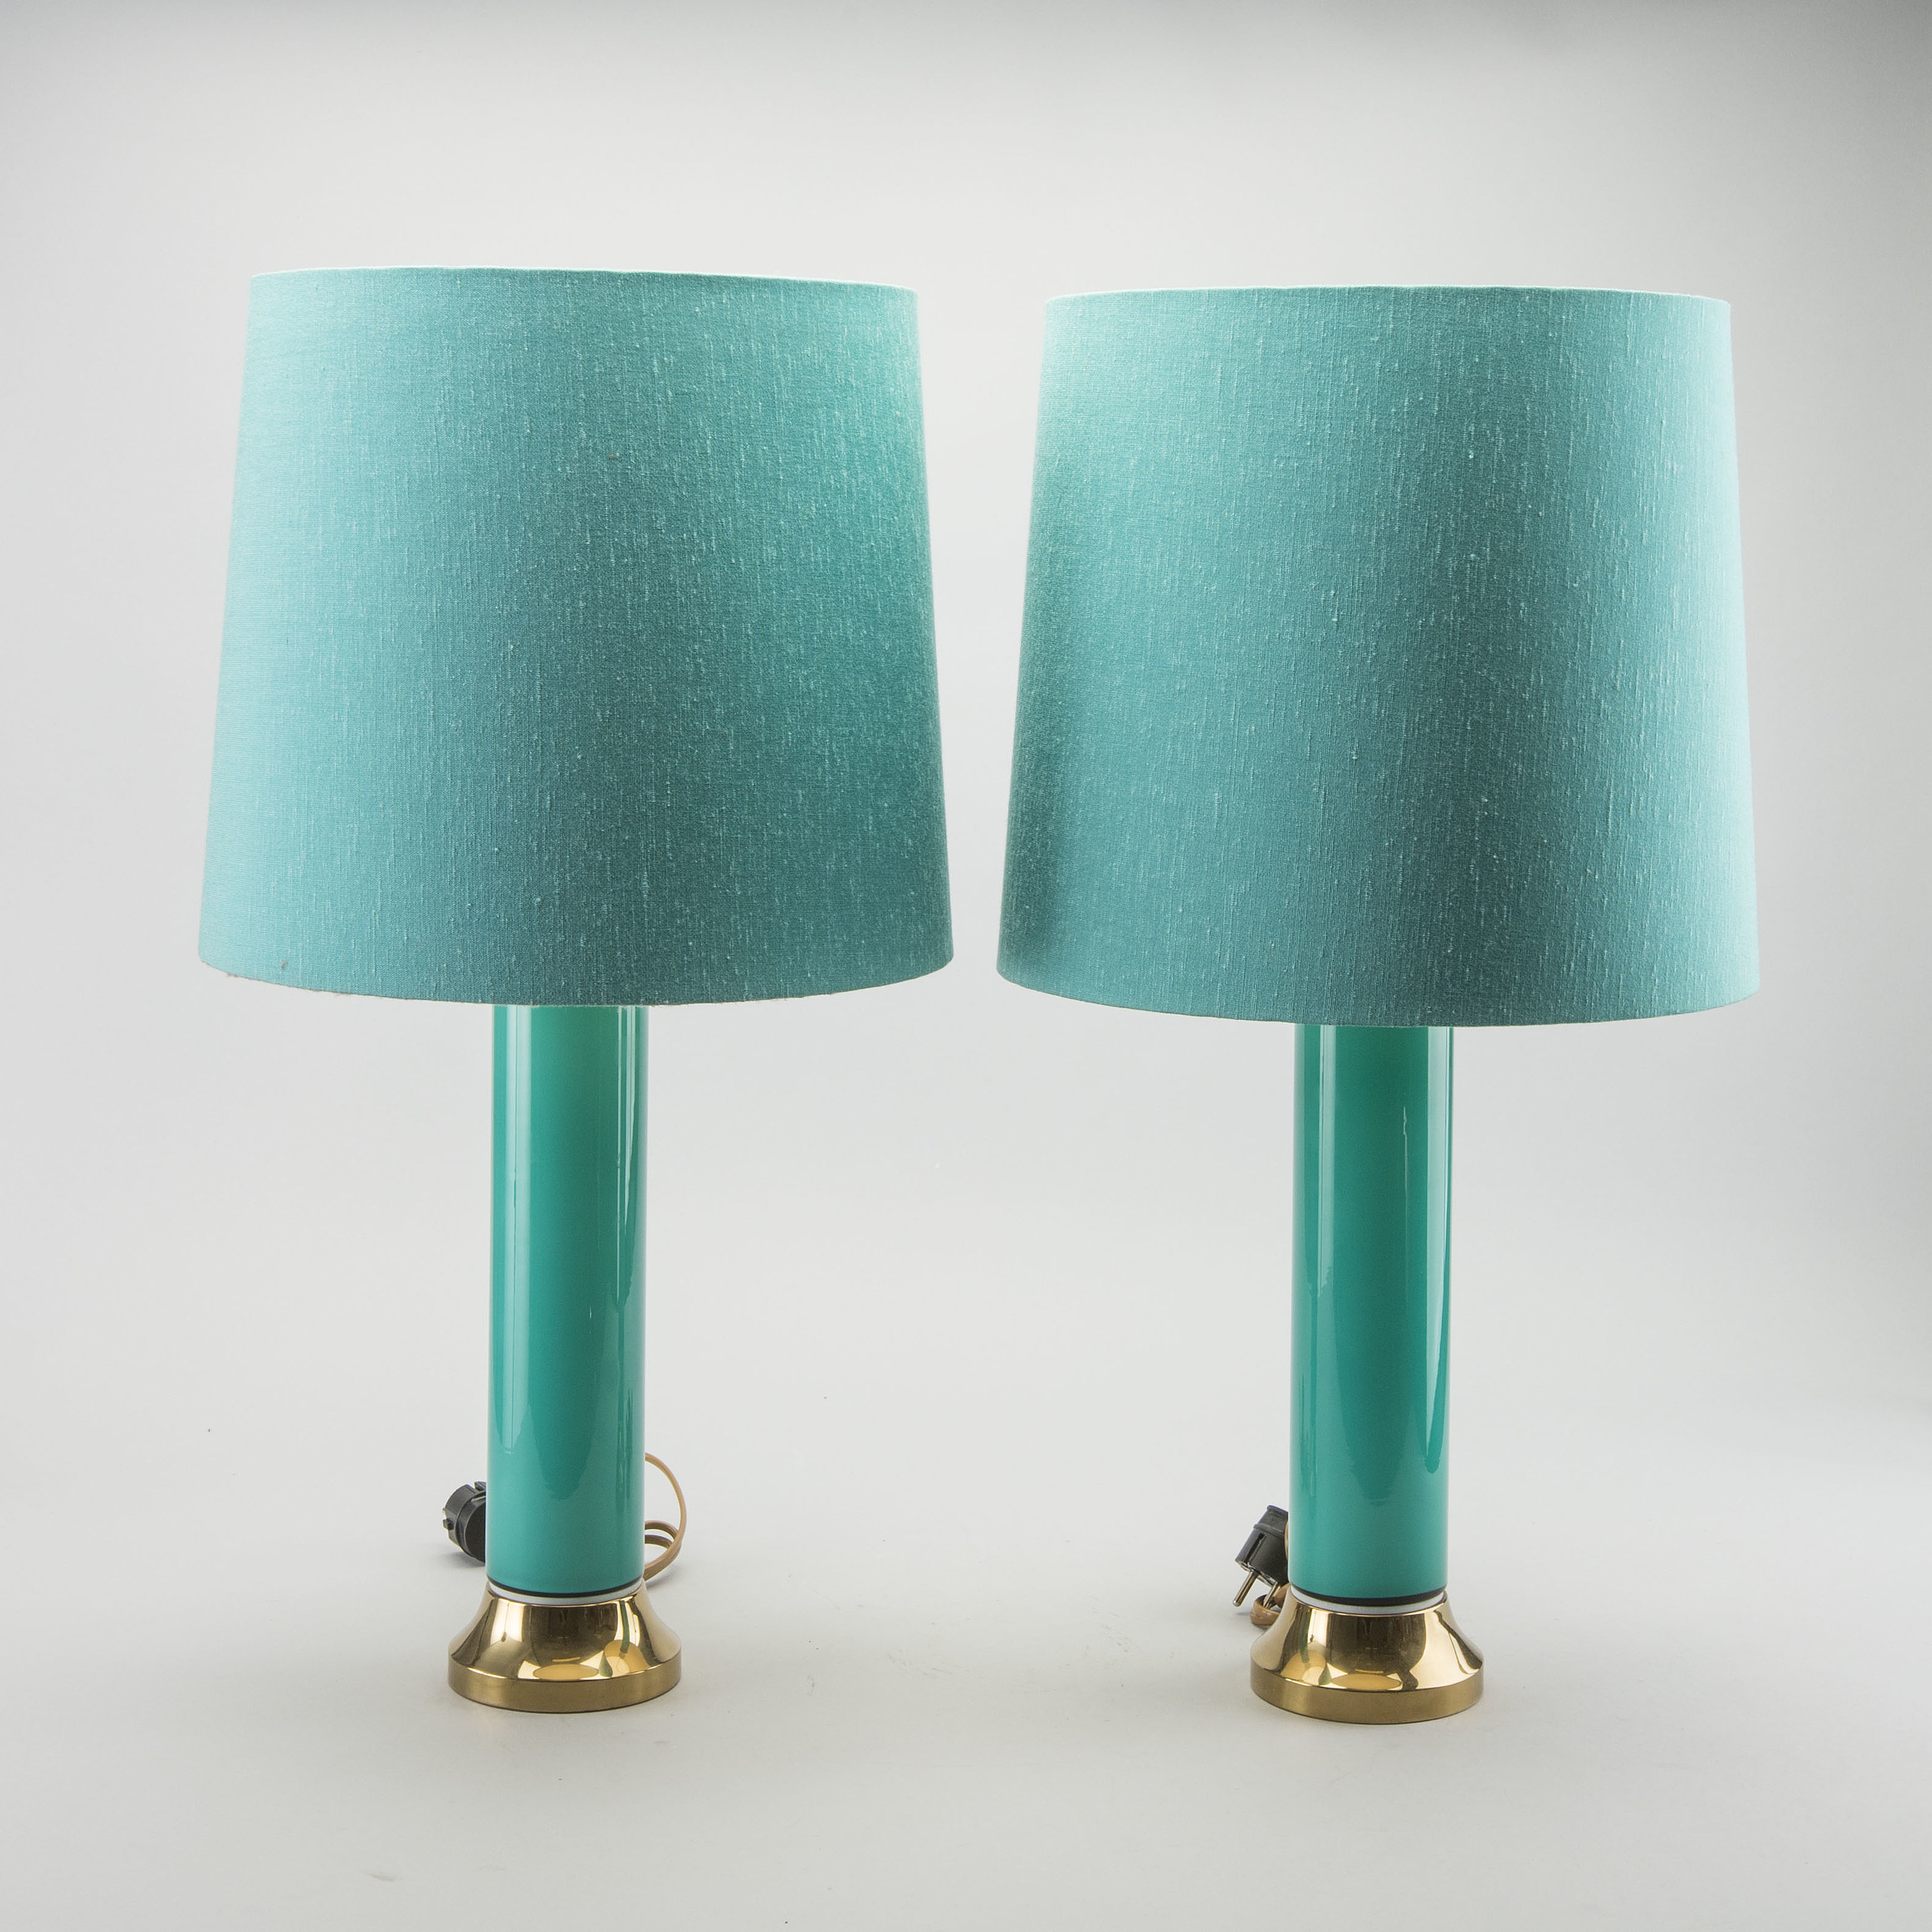 Bergbom S A Pair Of Brass And Turquoise Glass Table Lamps Sweden Mid 20th Century Bukowskis